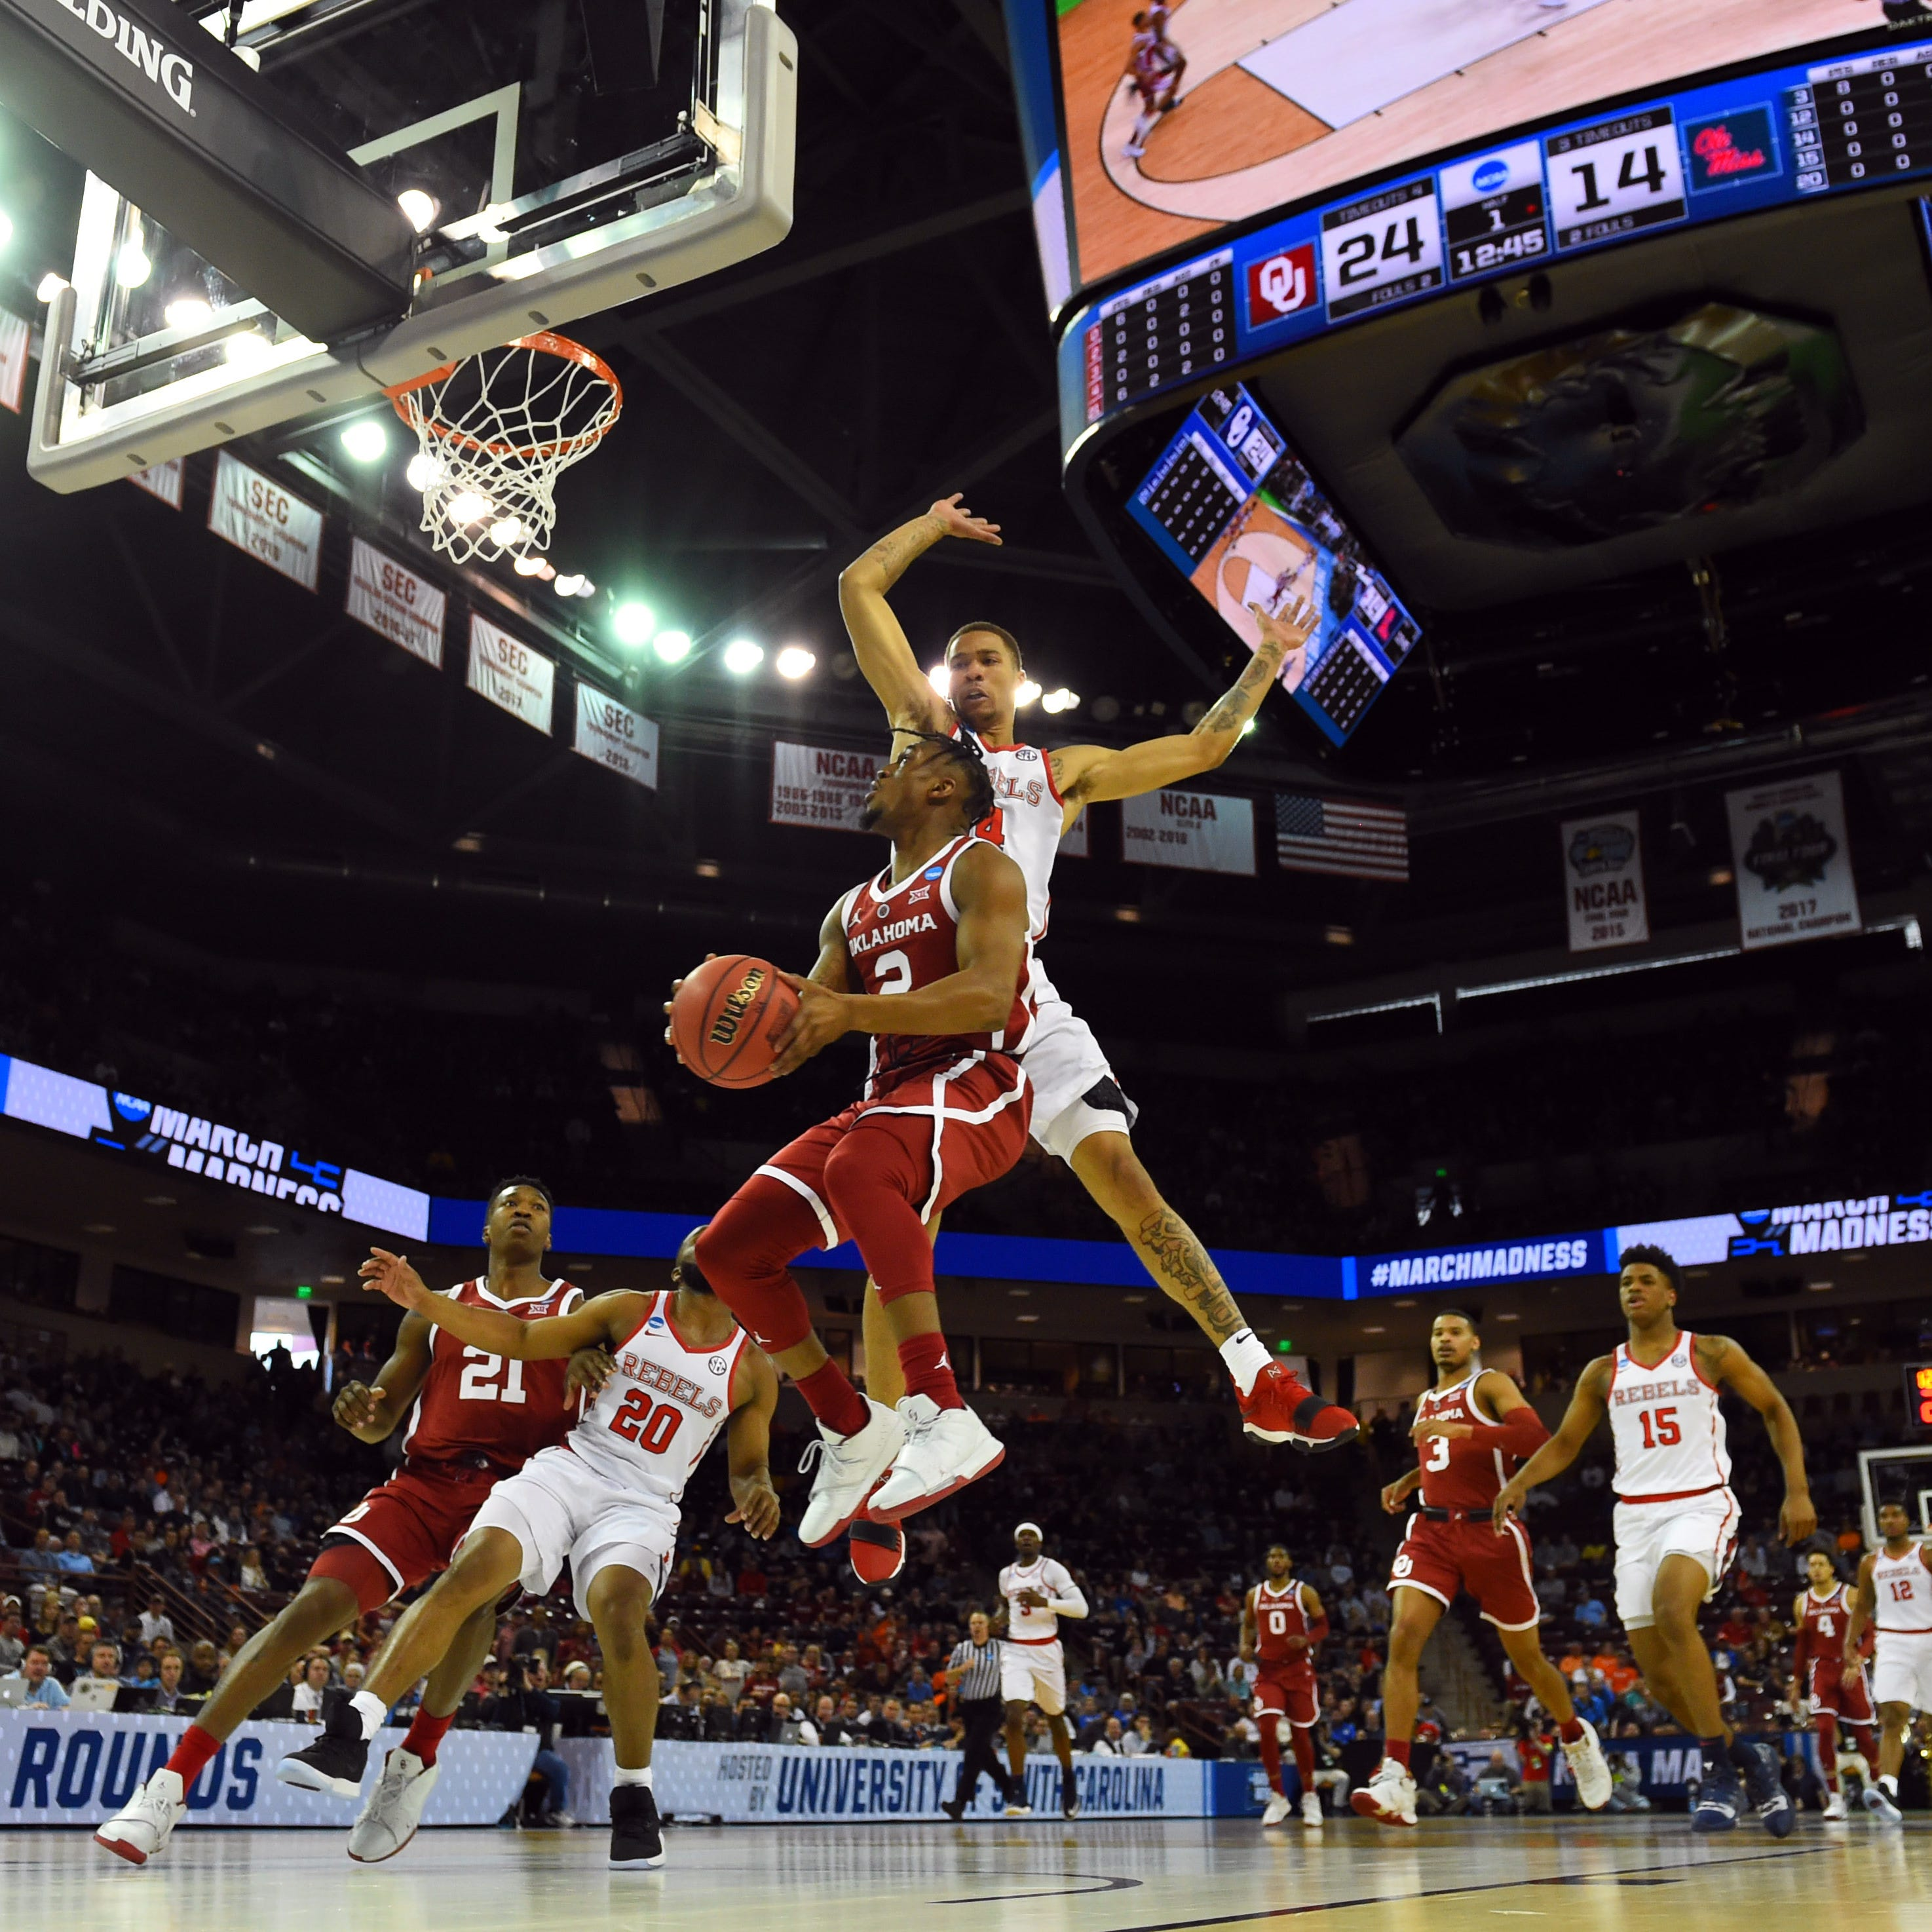 One and done: Ole Miss basketball blown out by Oklahoma in NCAA Tournament Friday